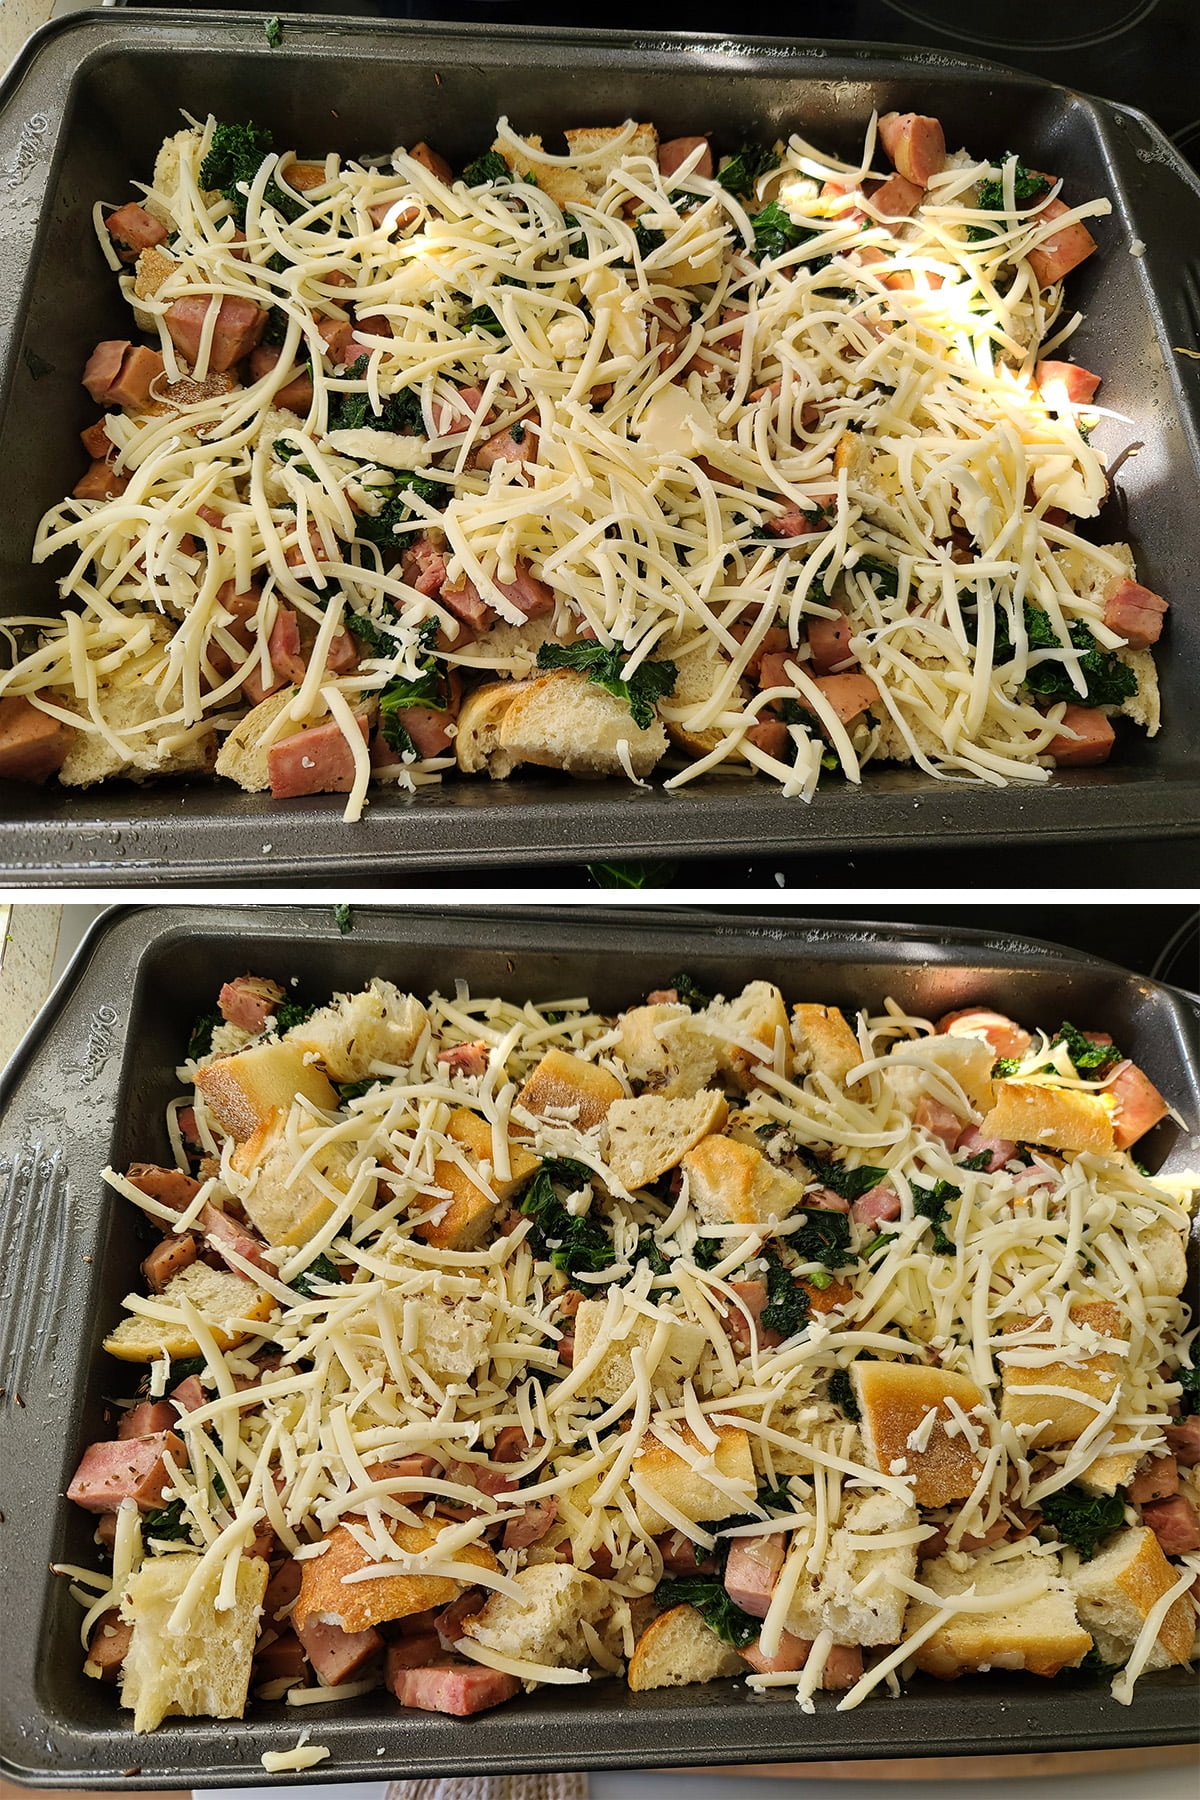 A two part compilation image showing the meat and kale mixture covered with cheese, and then topped with another set of bread, ham, kale, and cheese layers.